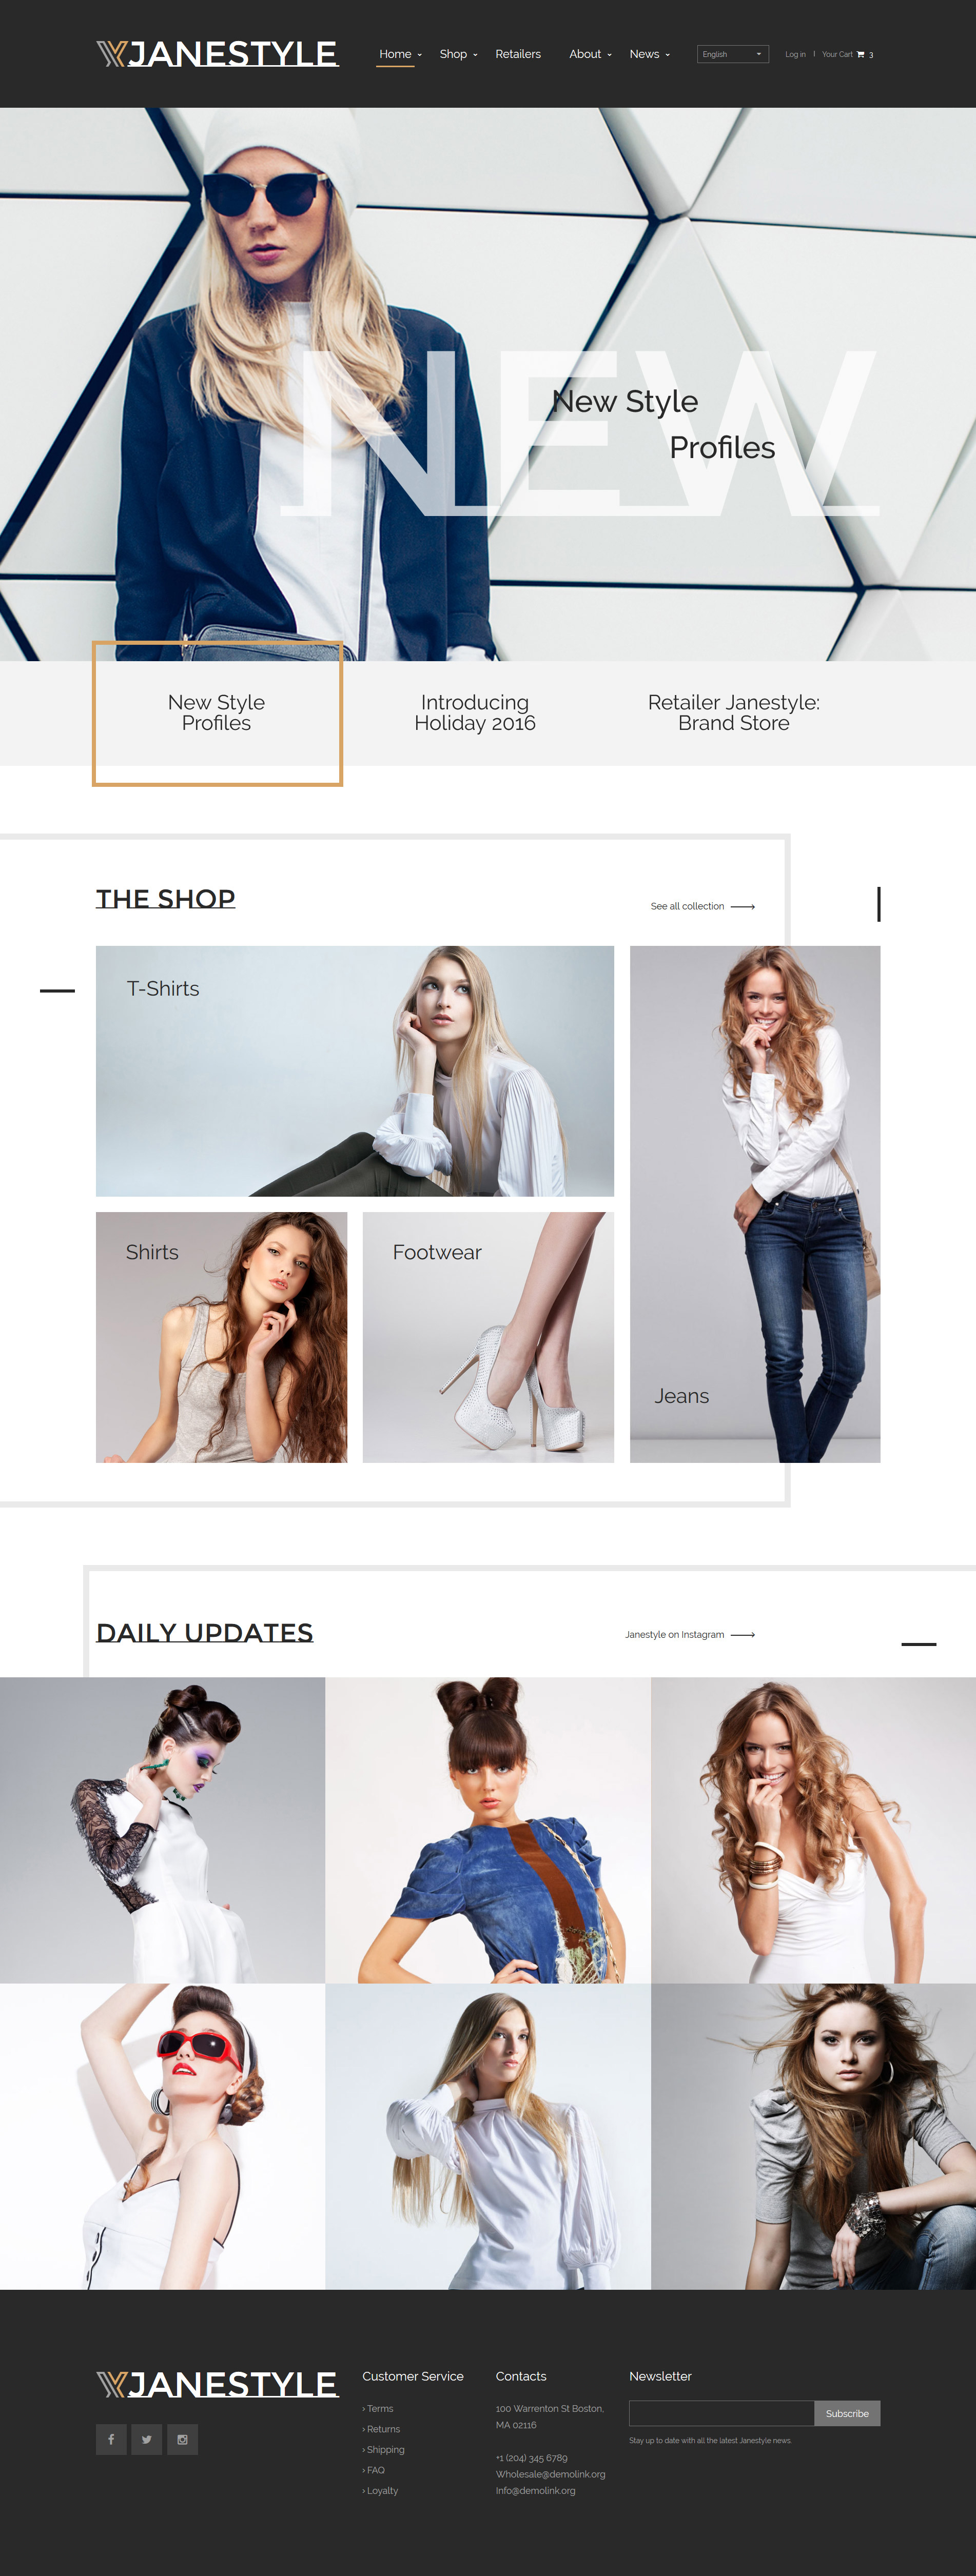 Fashion and style web site Chictopia - Official Site